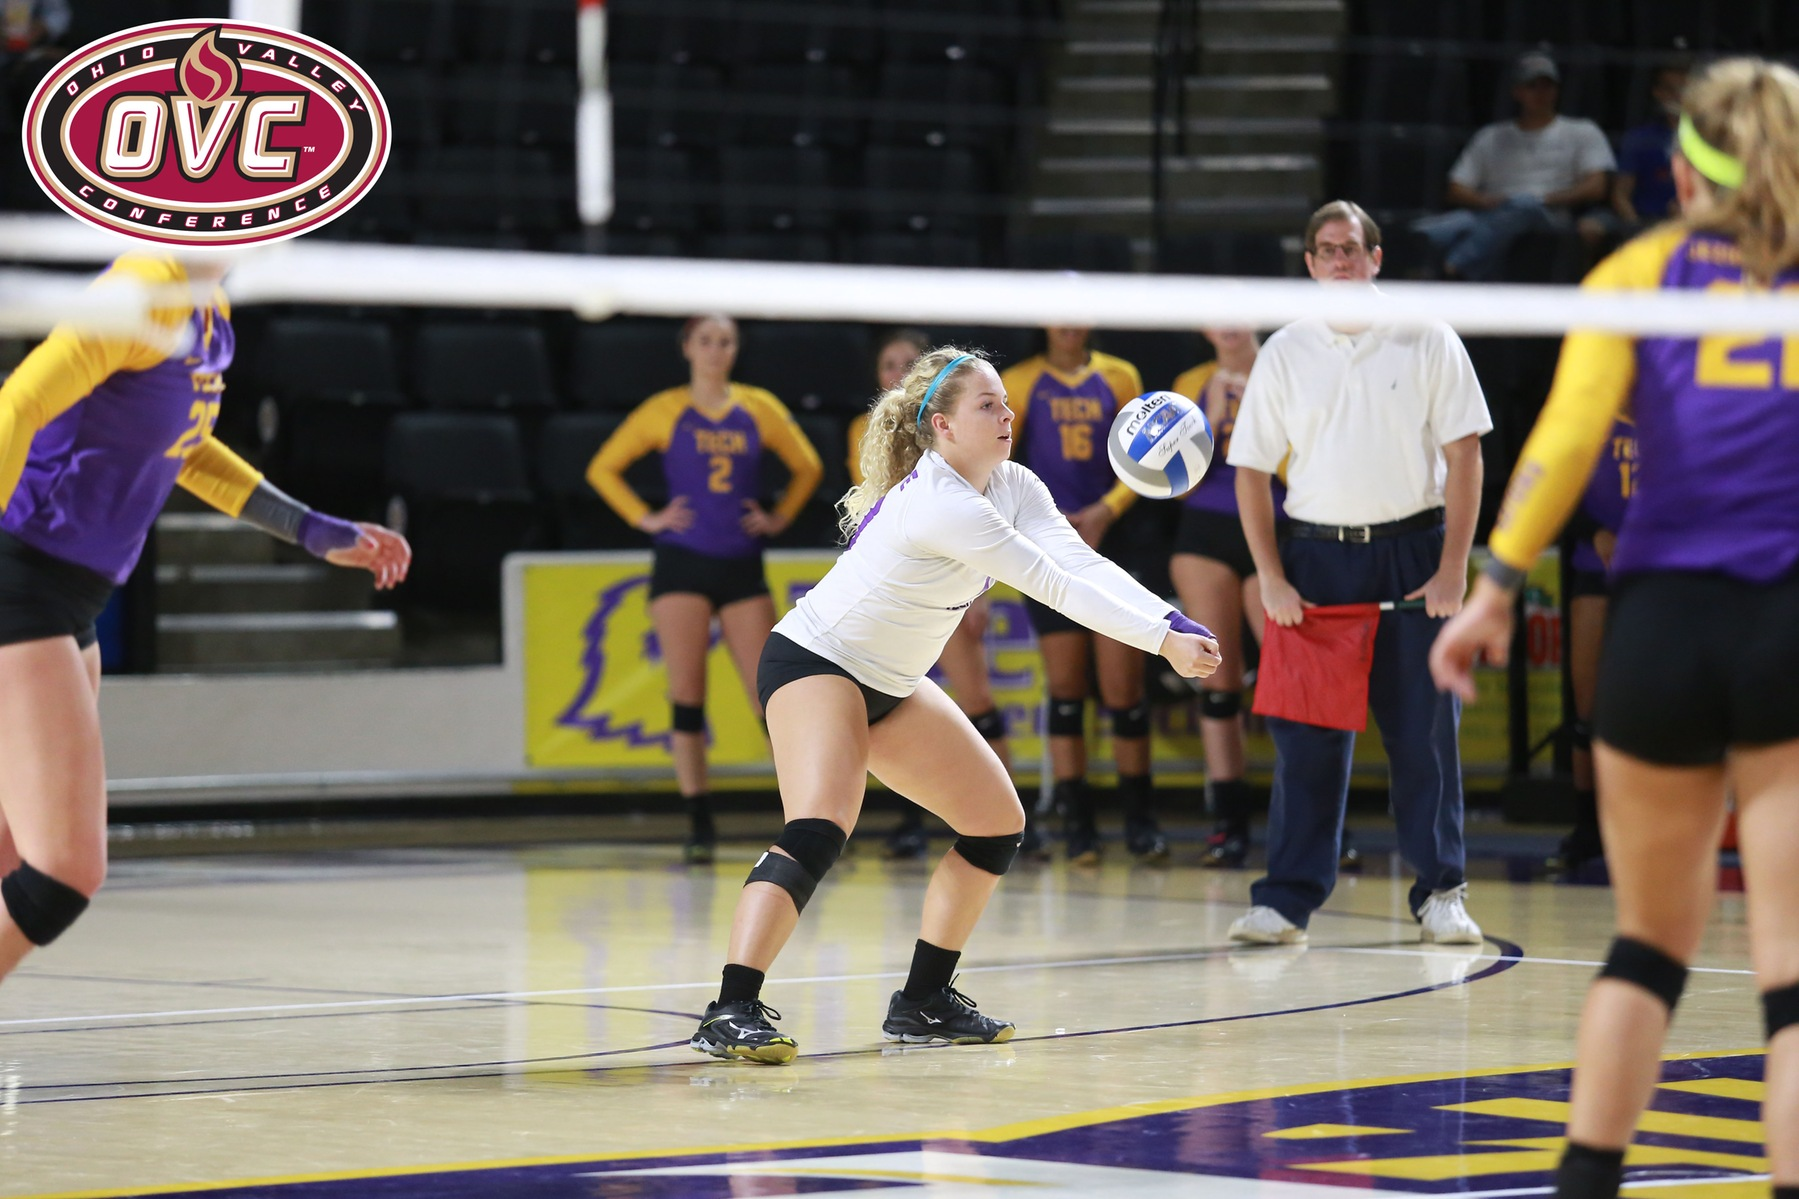 Libero Brugere voted to All-OVC second team